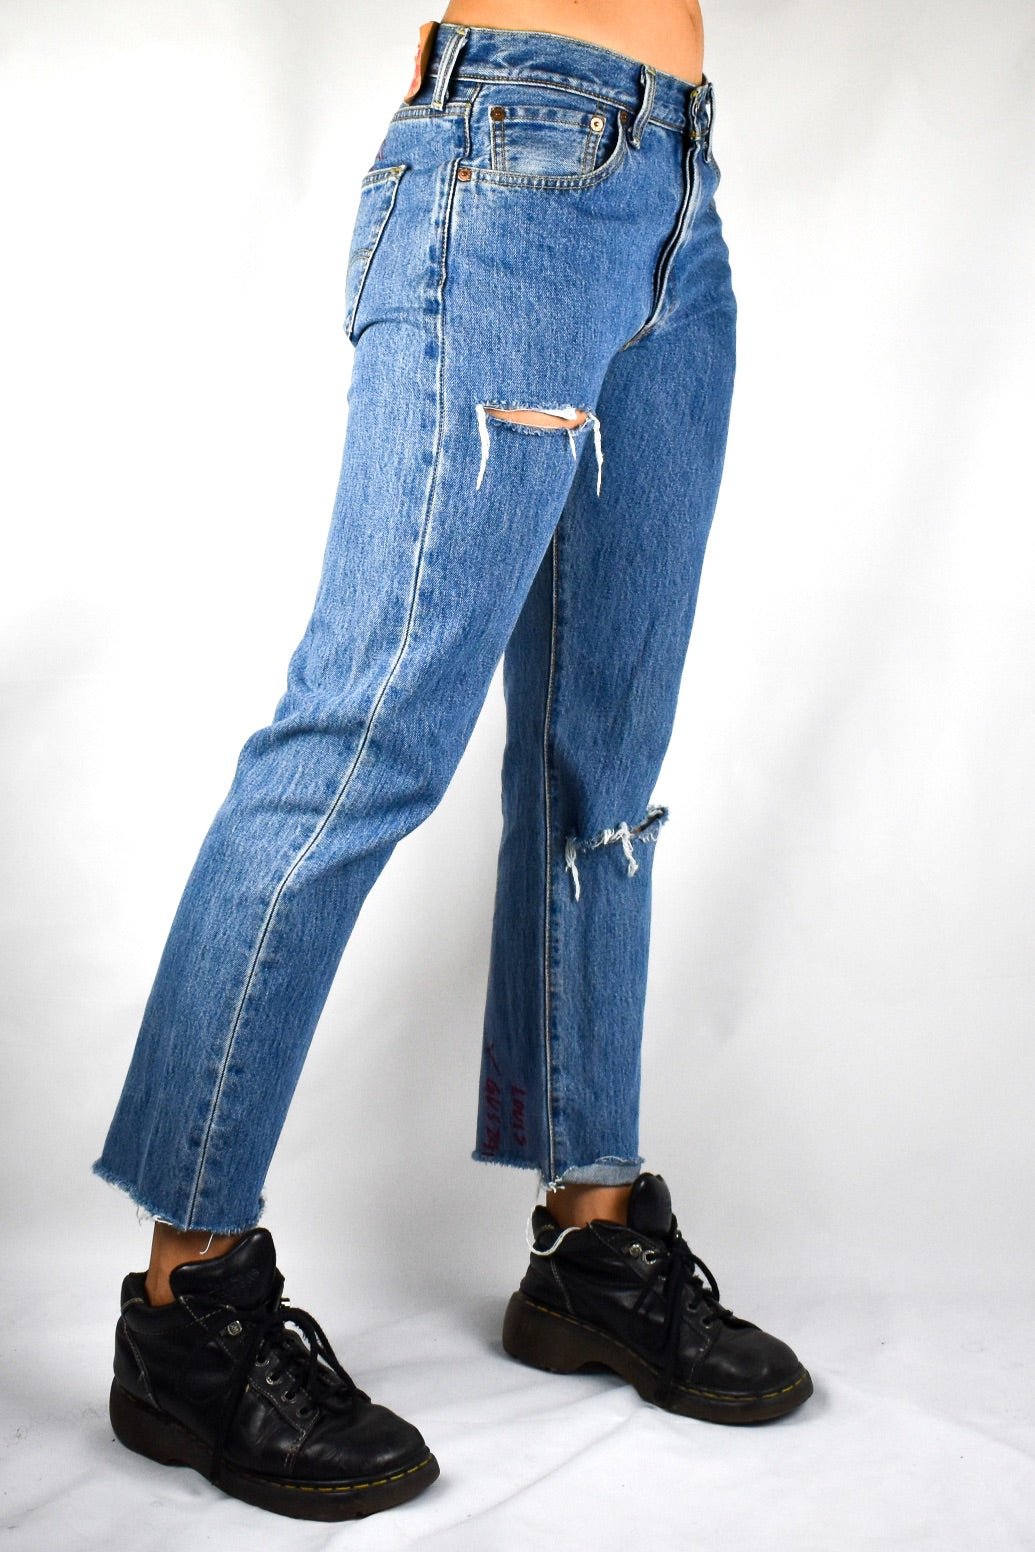 Low Rise Levis With Hand Drawn Details